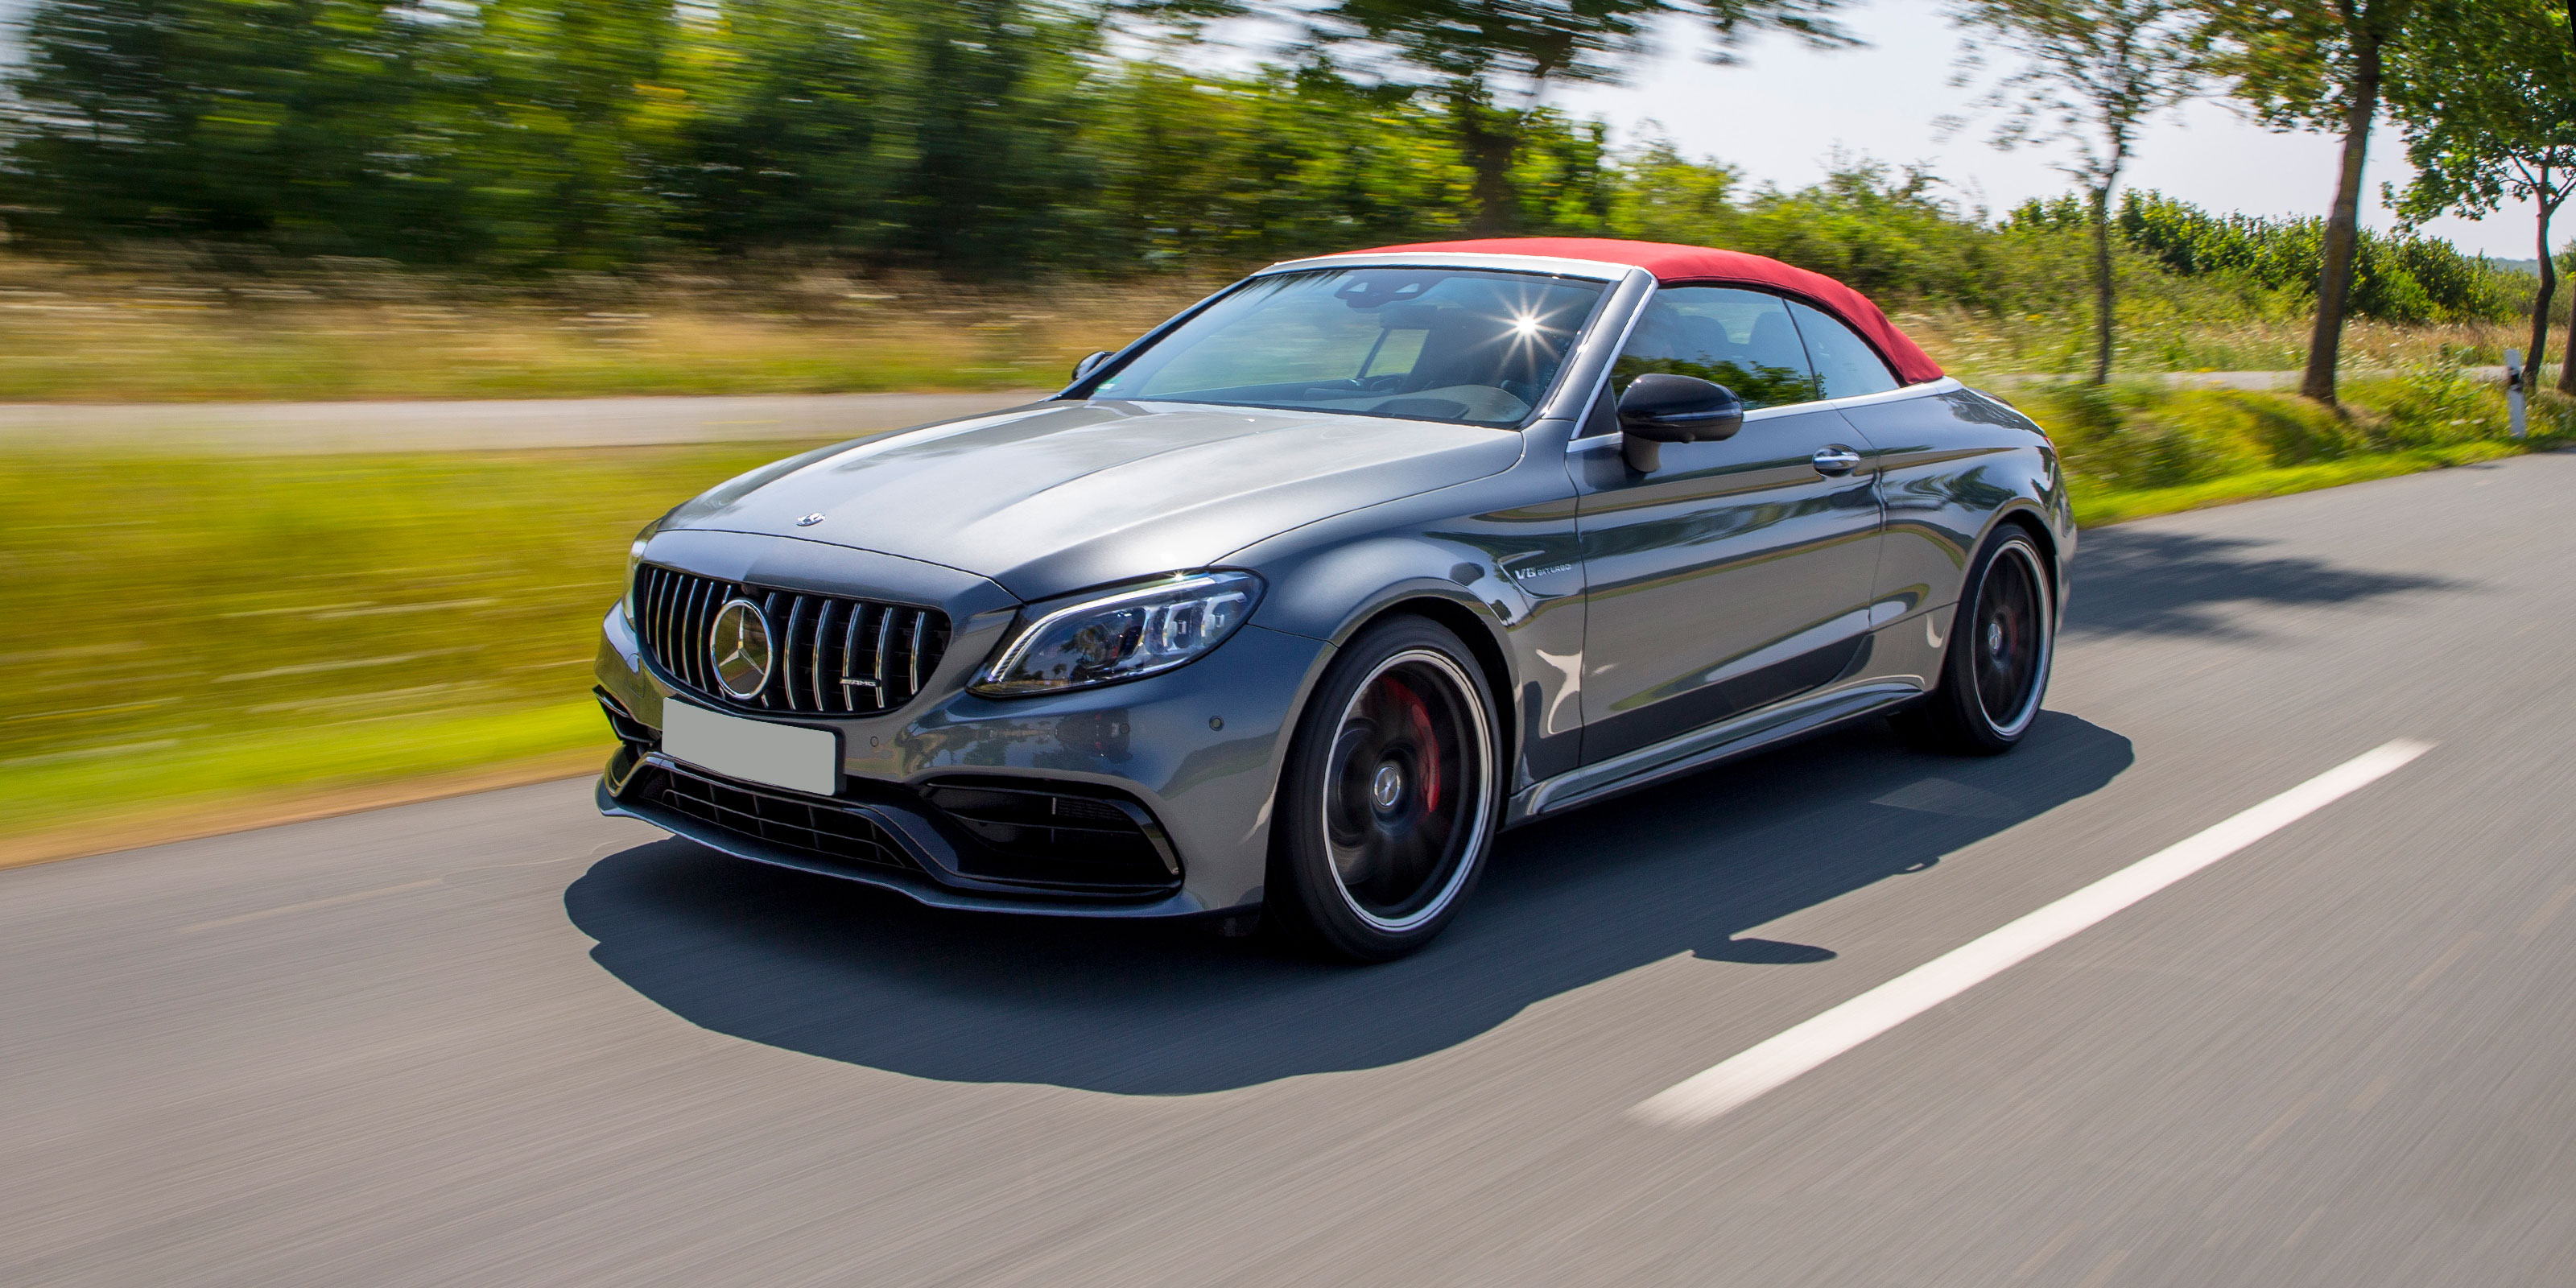 mercedes amg c63 cabriolet review 2021 | carwow